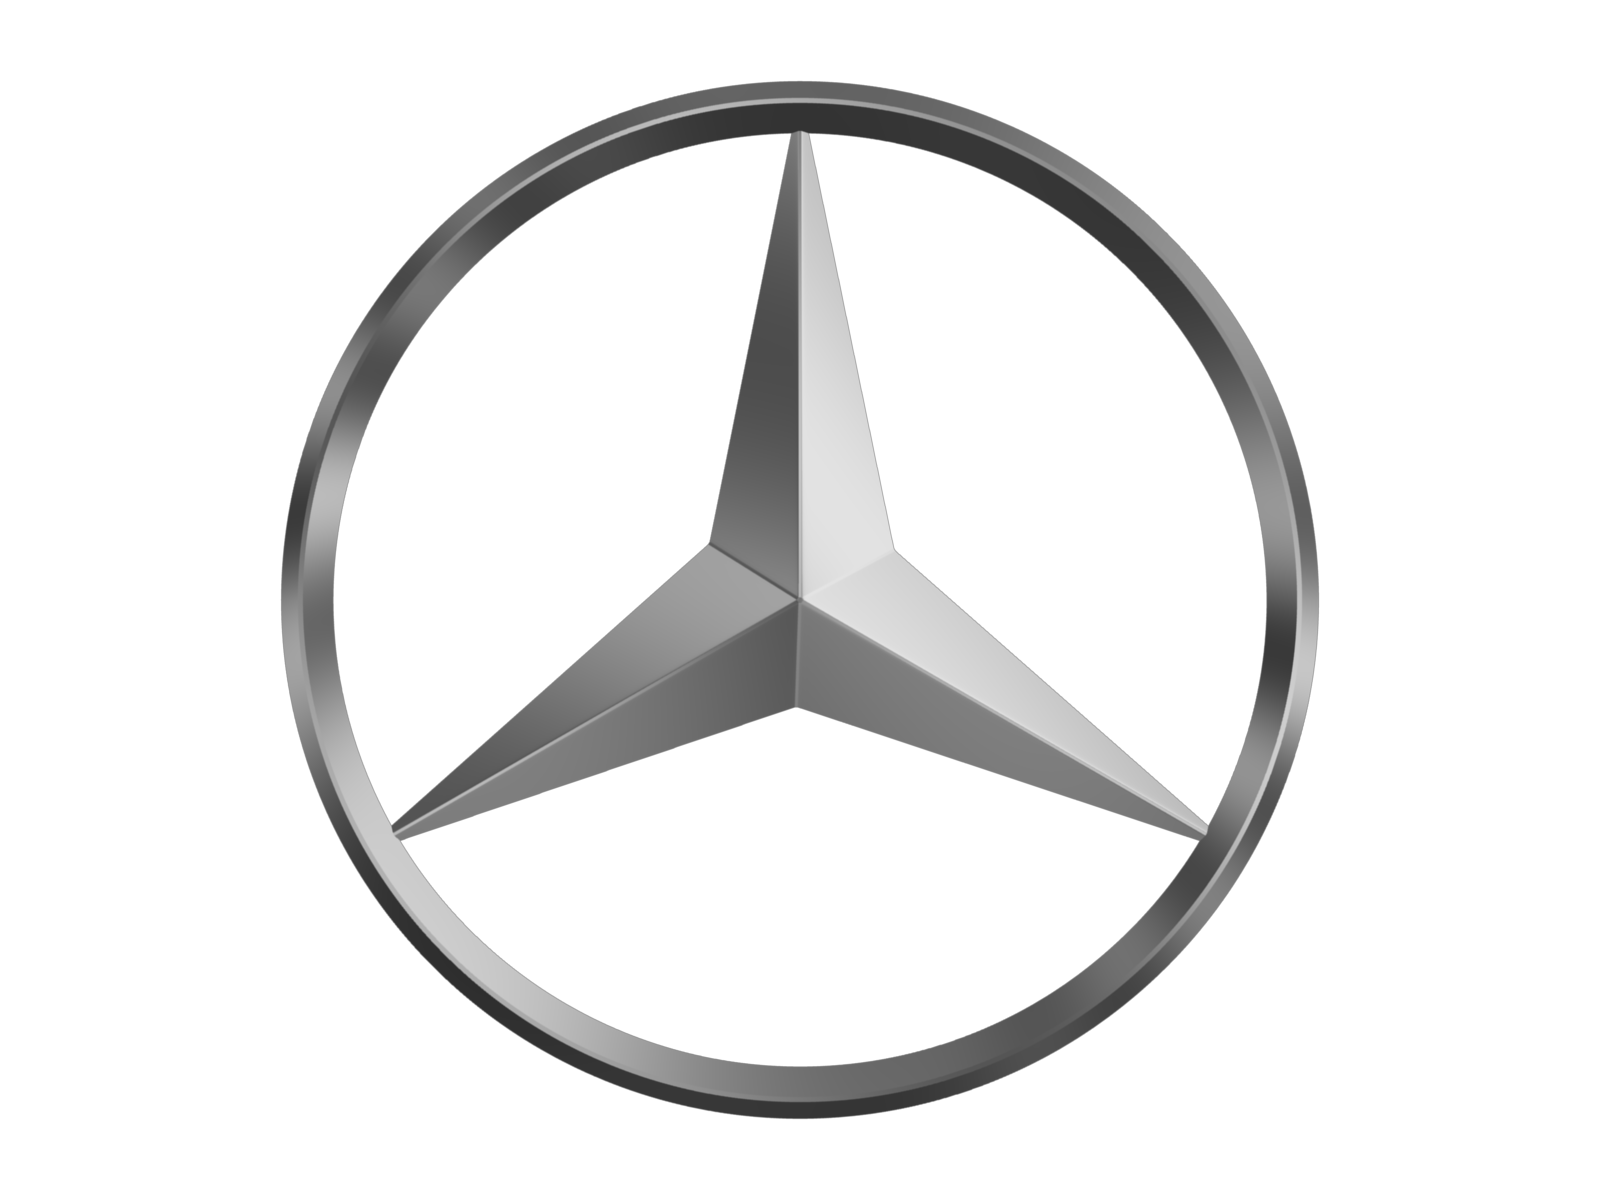 Mercedes three pointed star logo i couldn 39 t find a nice for Mercedes benz star logo